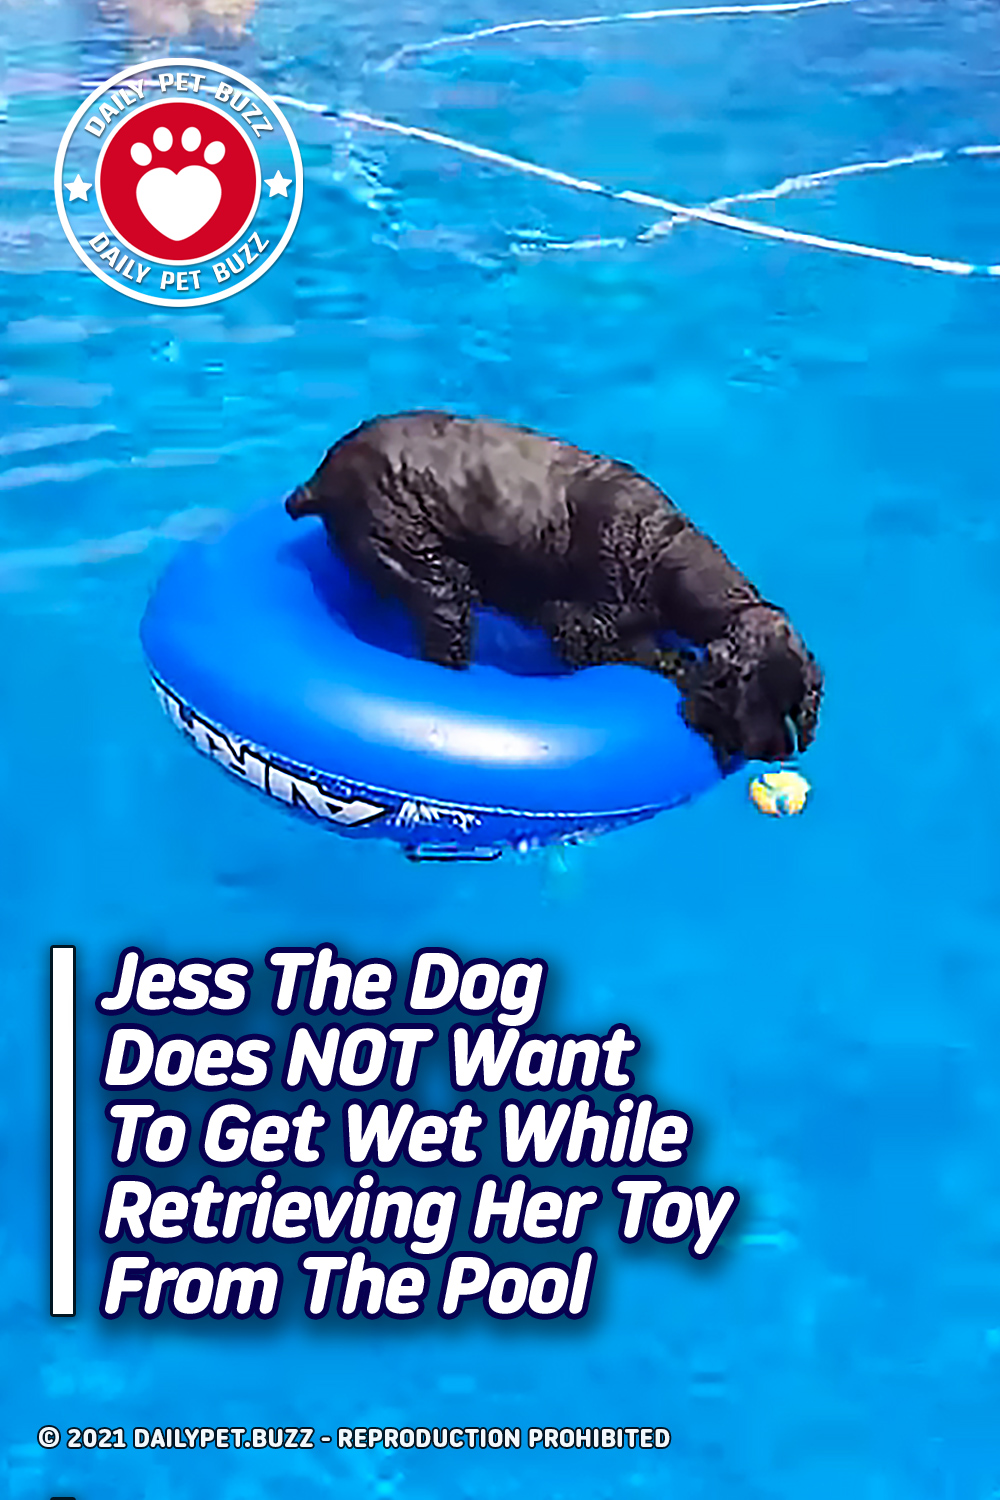 Jess The Dog Does NOT Want To Get Wet While Retrieving Her Toy From The Pool